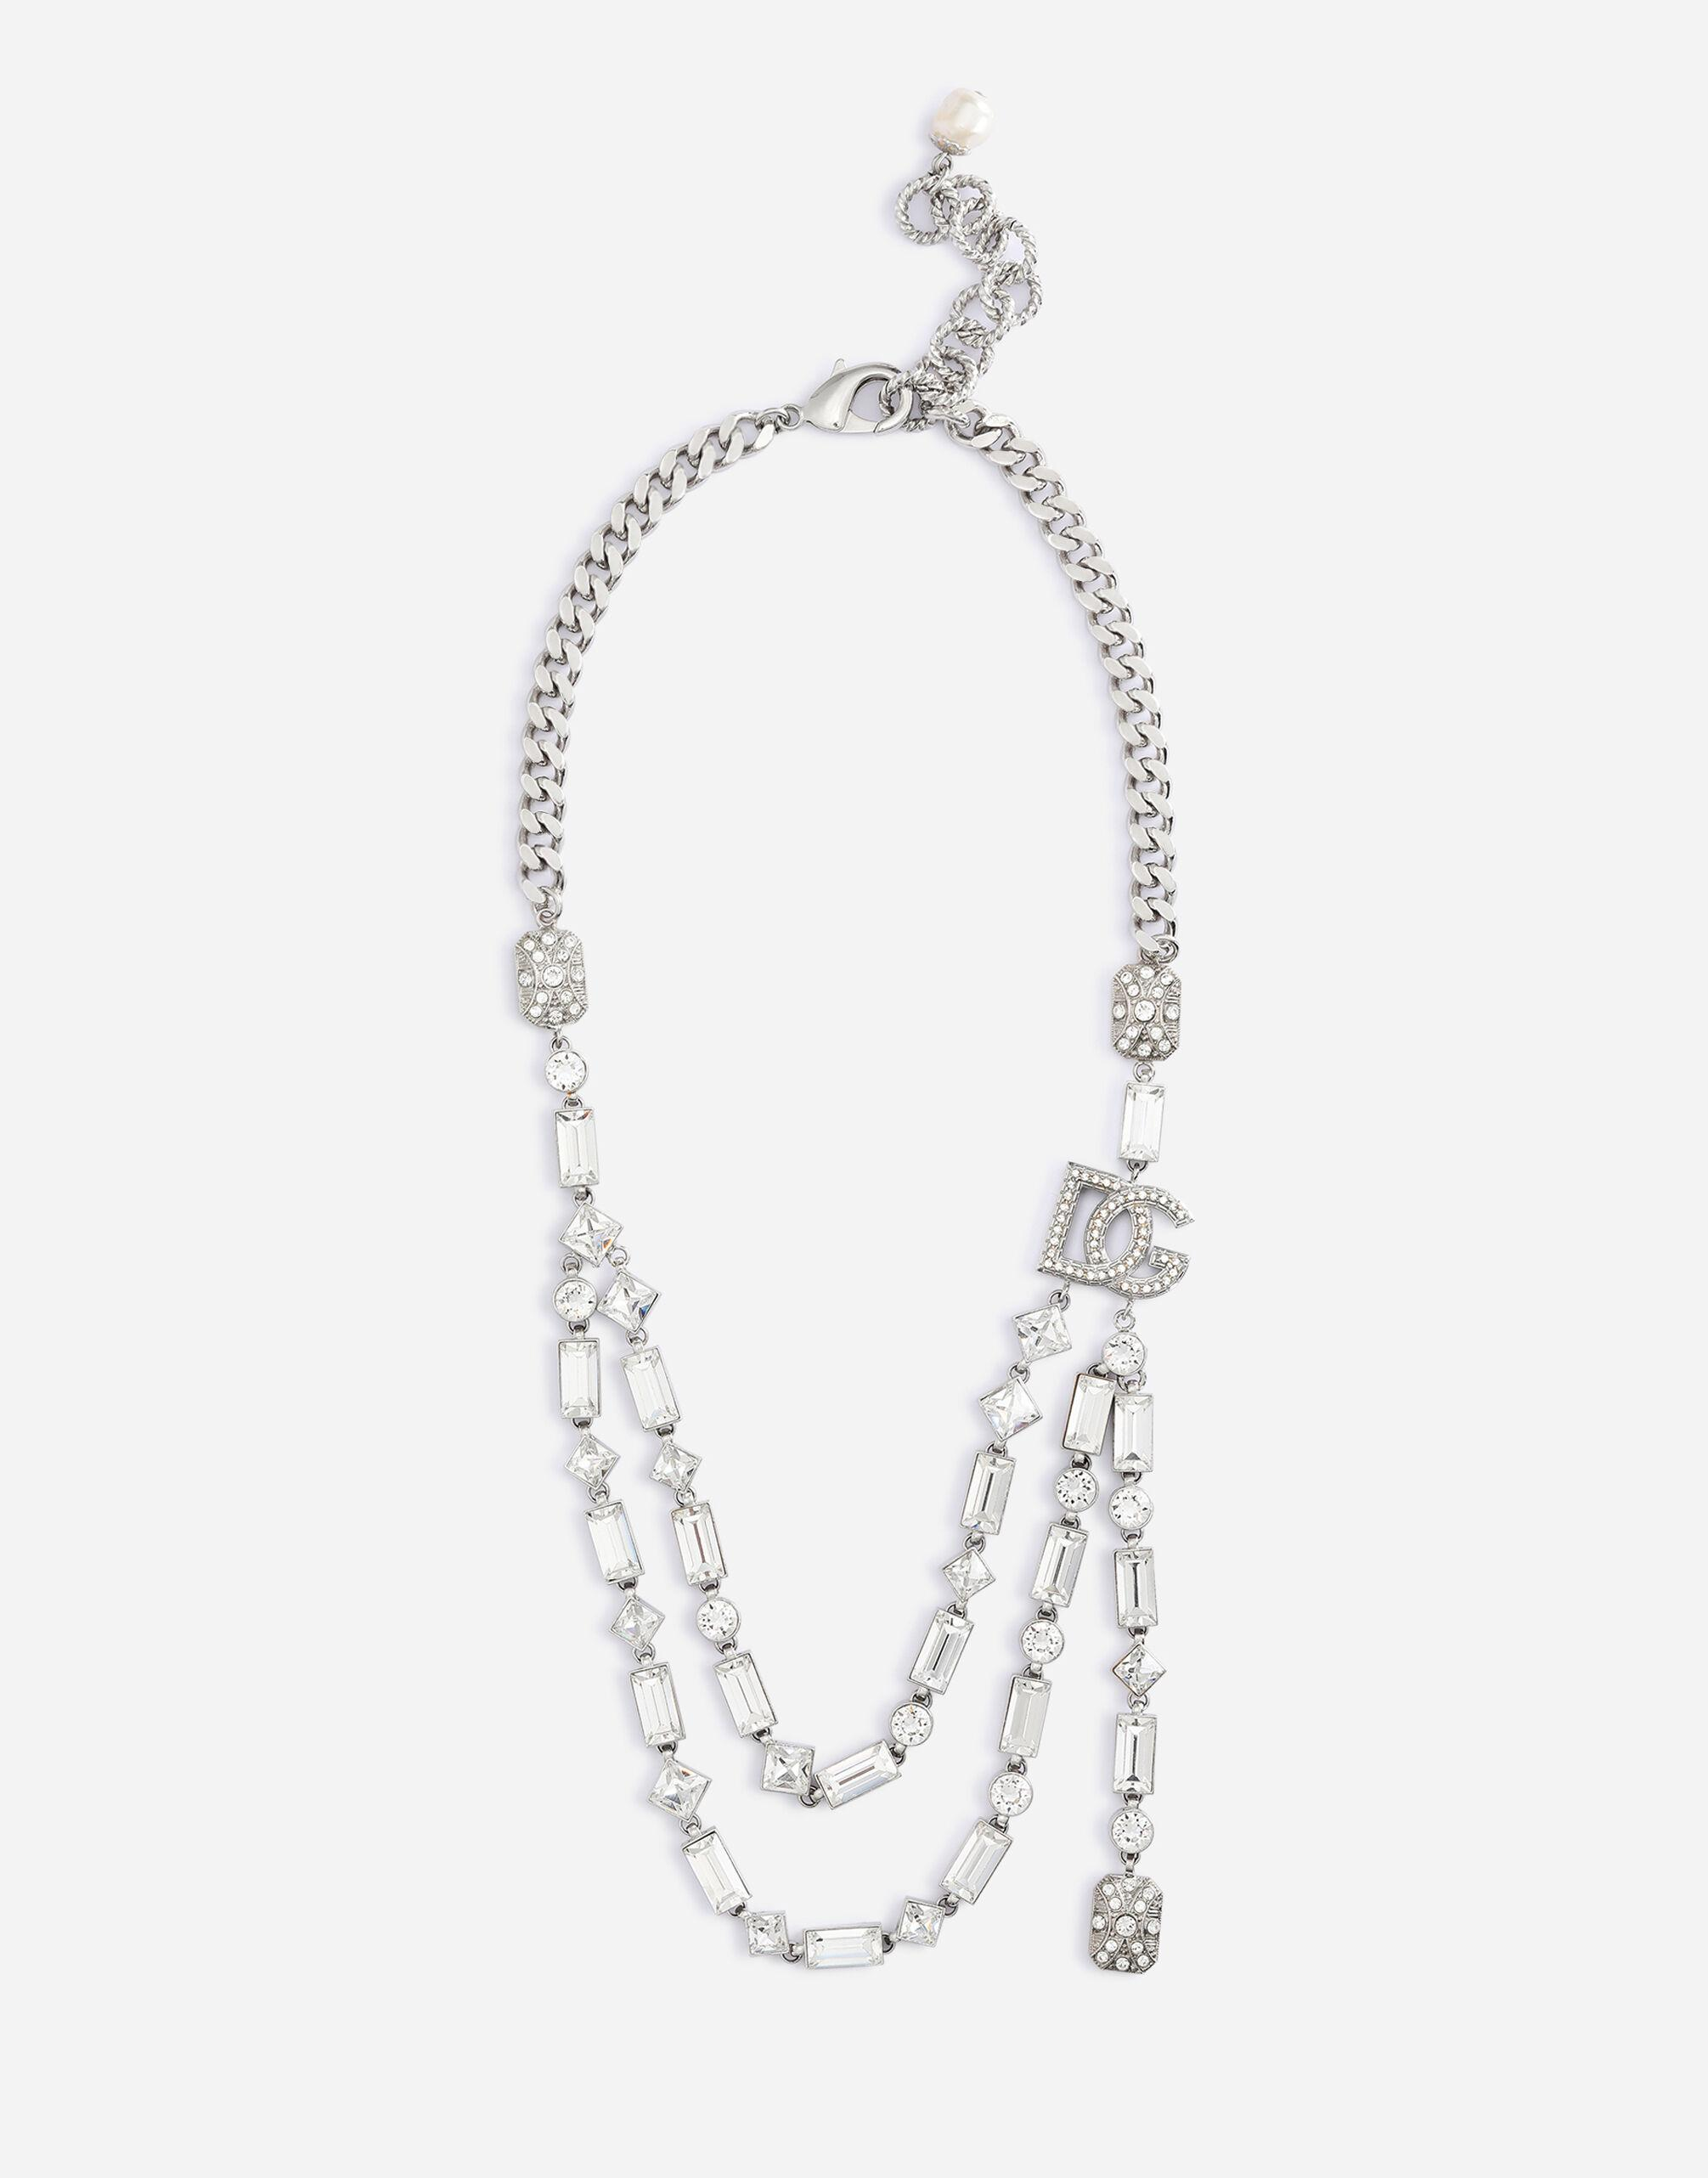 Double-link necklace with DG logo and rhinestone-detailed pendant